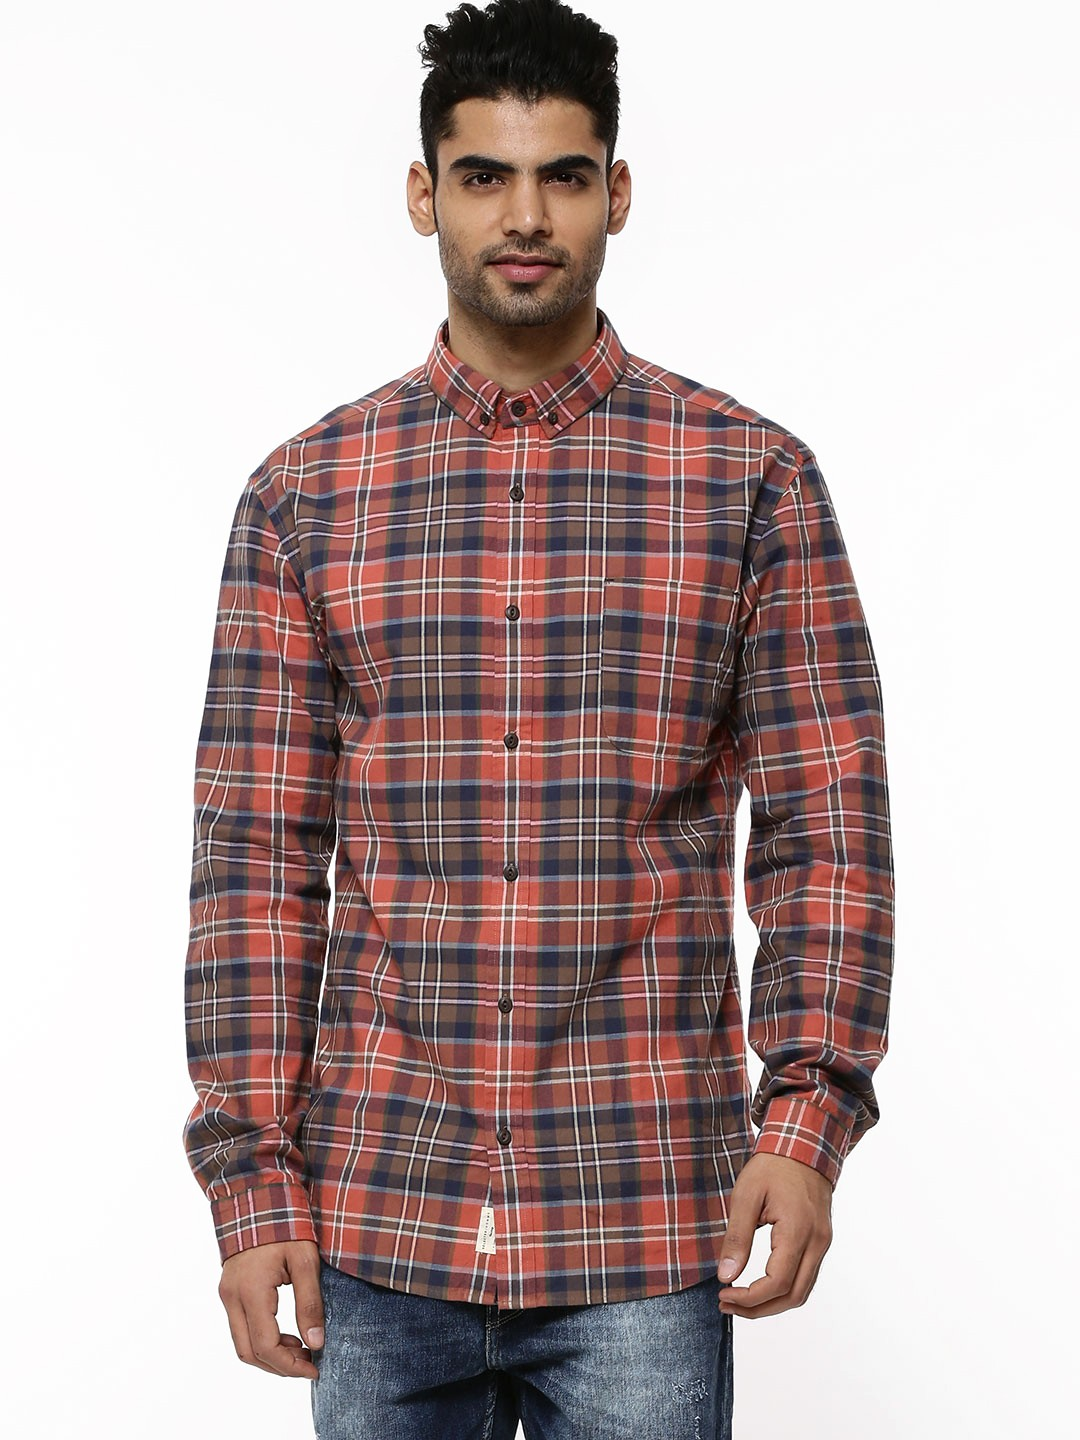 Buy check shirts for men and women online in India. Checkout huge collection of check shirt available in different colors at thrushop-06mq49hz.ga